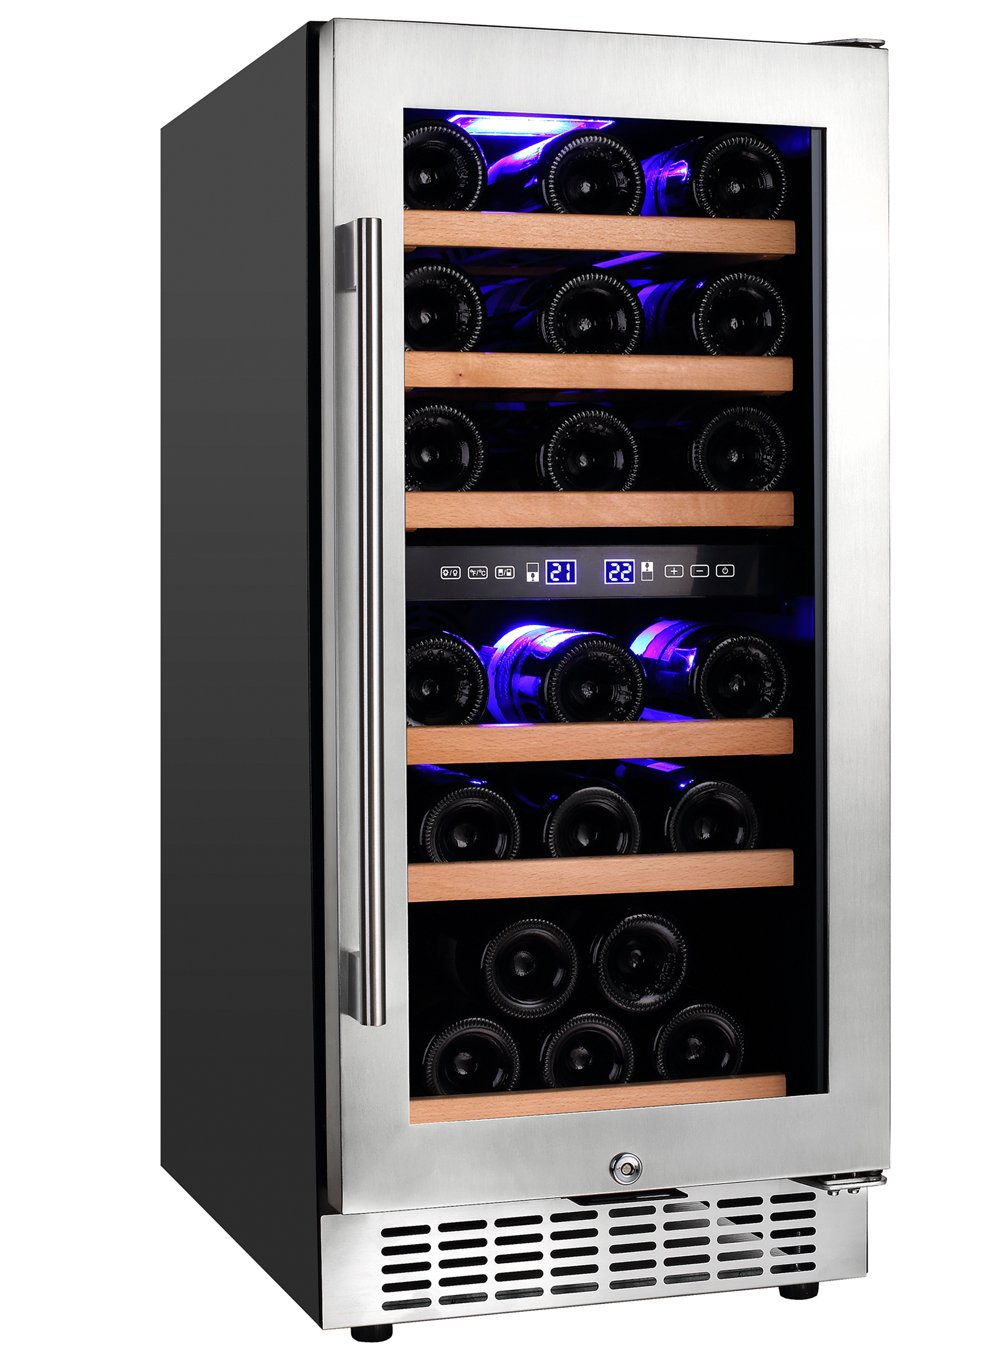 Aobosi Wine Cooler Refrigerator with 30 Bottles Dual Zones,Classy Look, Stainless Steel & Reversible Glass Door,and LED Display | Thermostatic Wine Refrigerator for Red and White Wine, Champagne